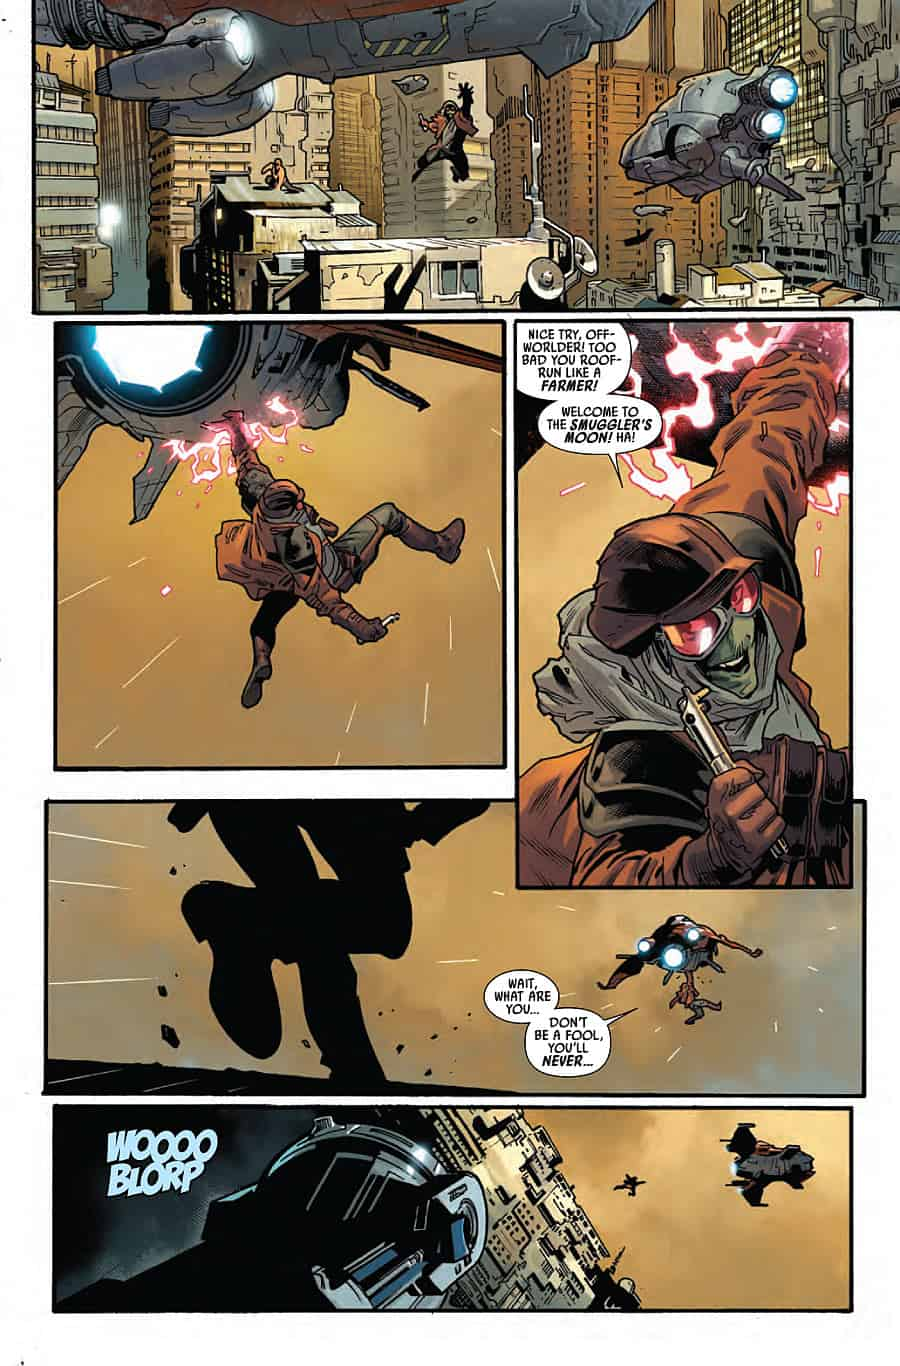 Star Wars #9 - Luke makes a crazy jump in pursuit of his lightsaber